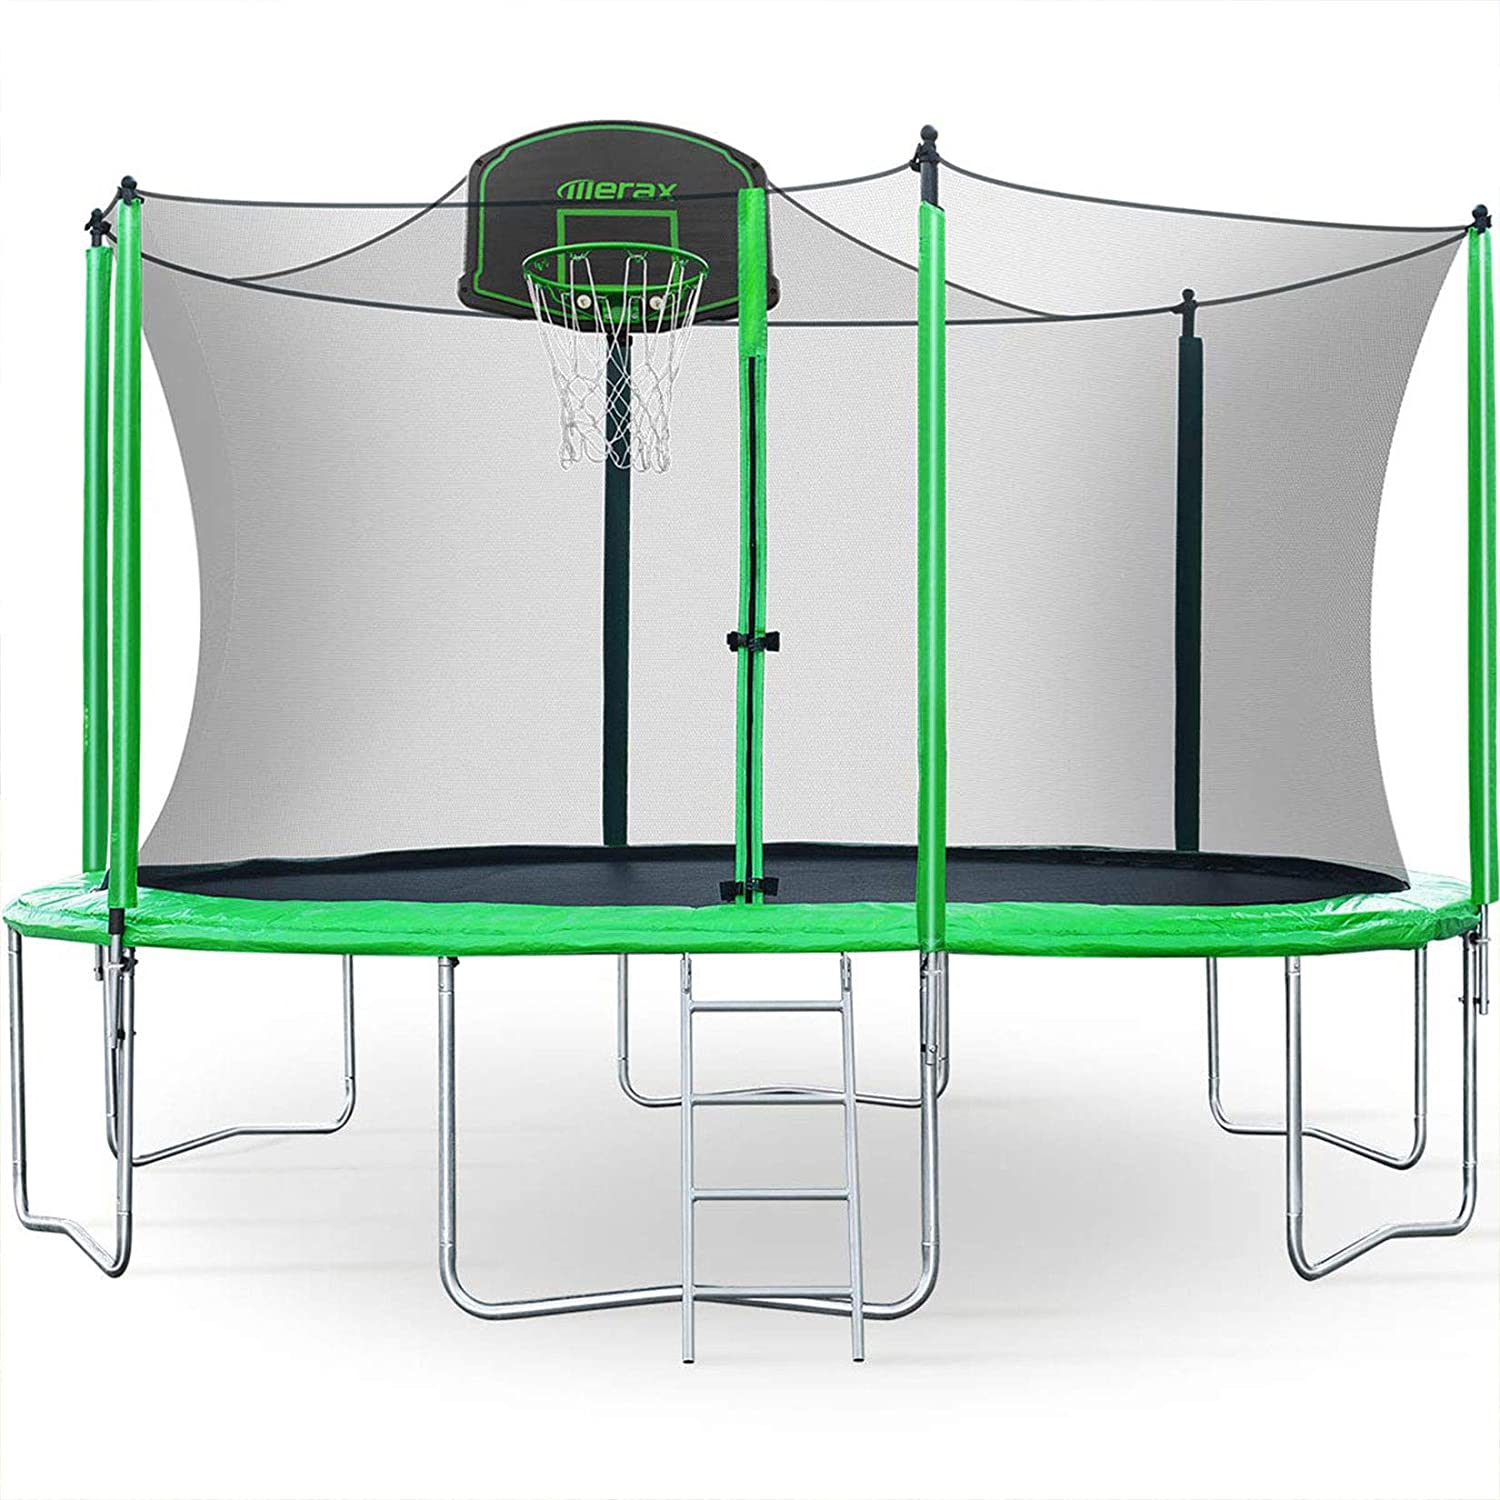 Merax 12FT Trampoline with Safety Enclosure Net